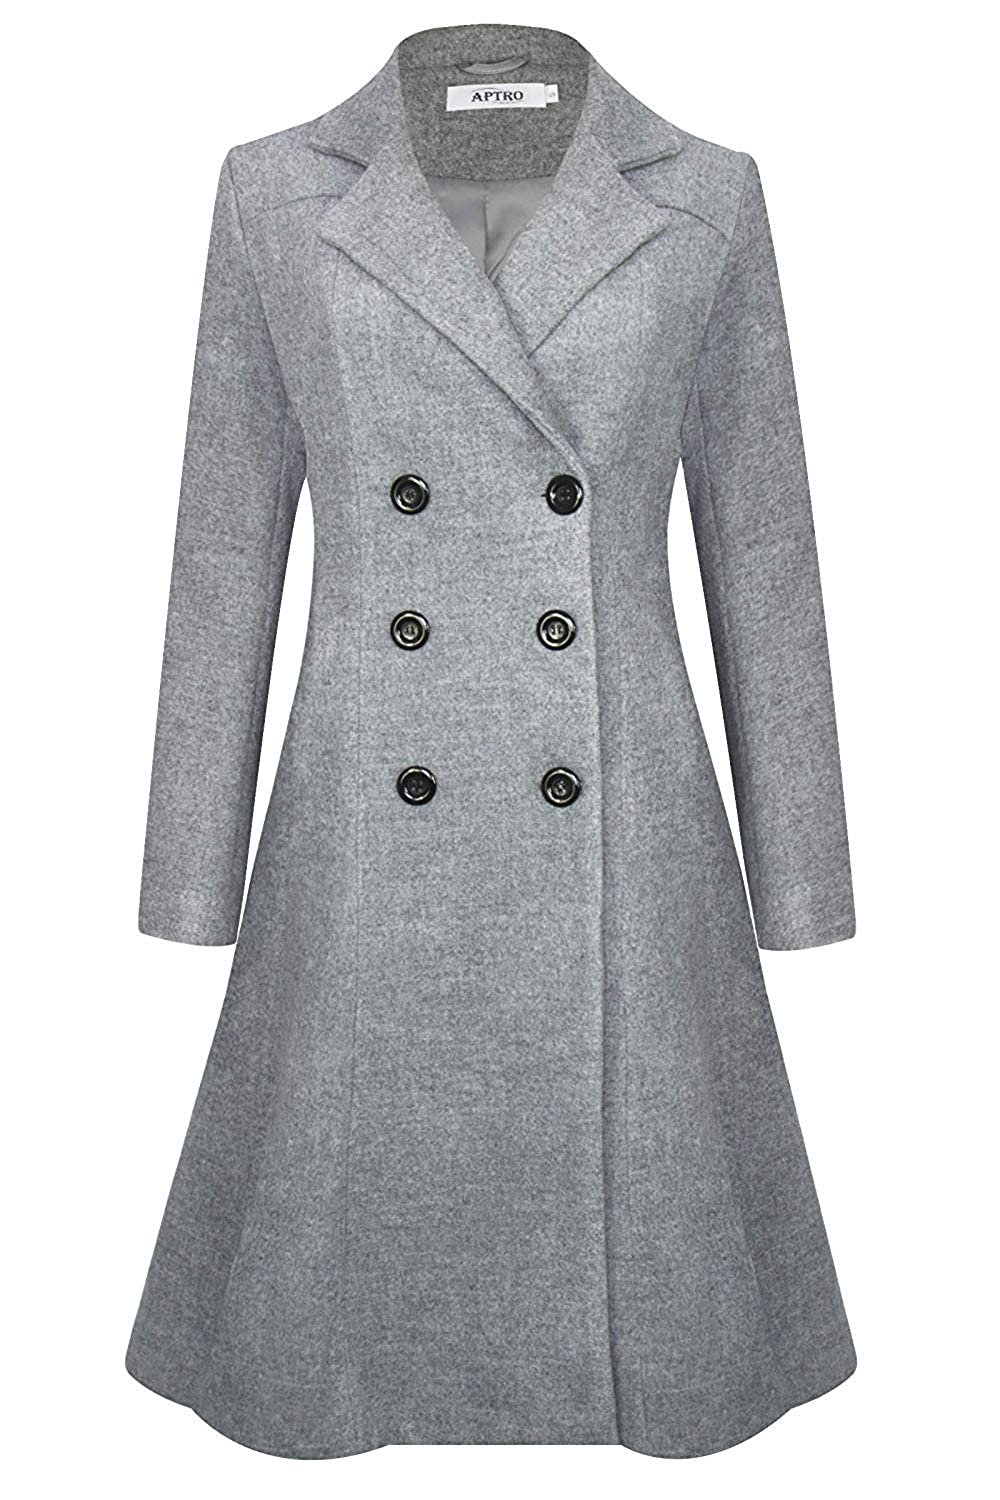 1940s Coats & Jackets Fashion History APTRO Womens Winter Wool Trench Coat Double Breasted Long Pea Coat $86.94 AT vintagedancer.com